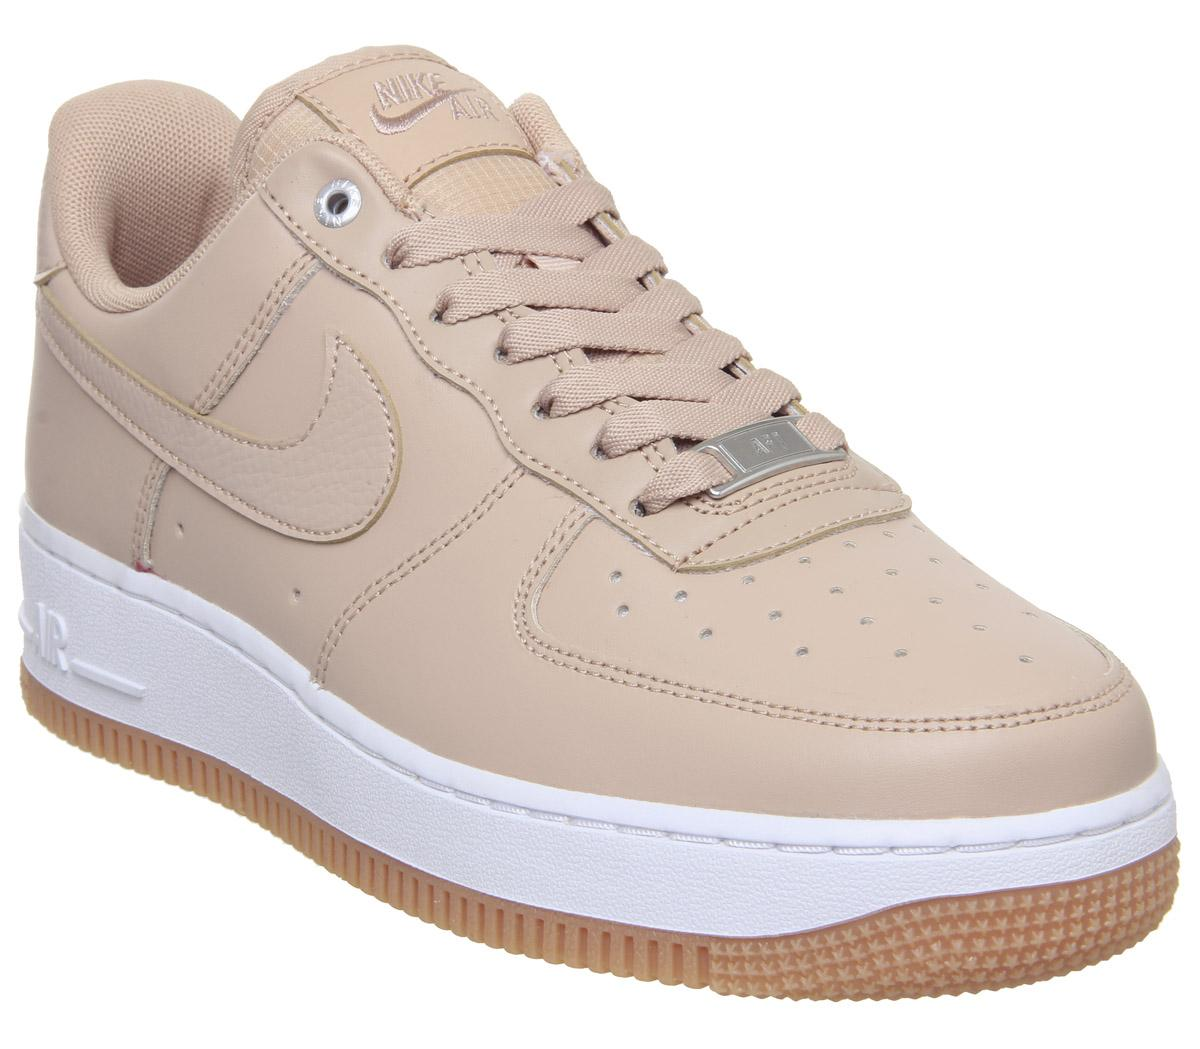 Parpadeo Enfriarse subasta  Nike Air Force 1 07 Trainers Bio Beige Metallic Silver Gum Med Brown White  - Hers trainers